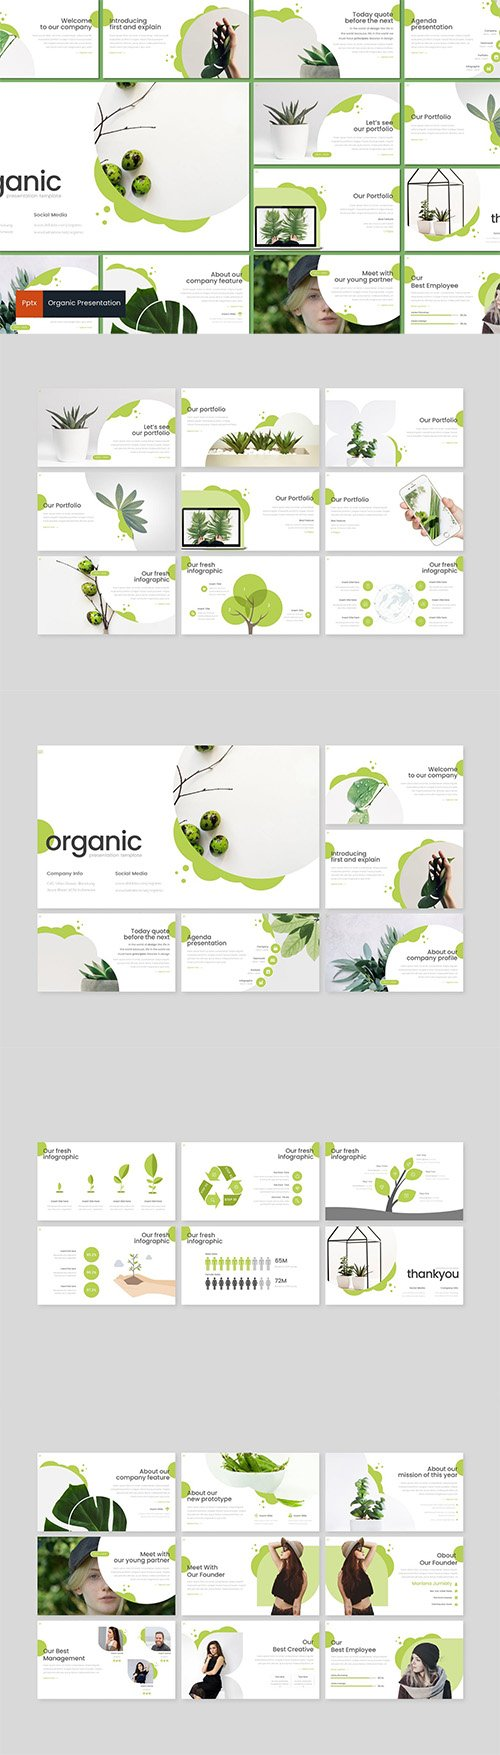 Organic - Powerpoint, Keynote and Google Slides Templates